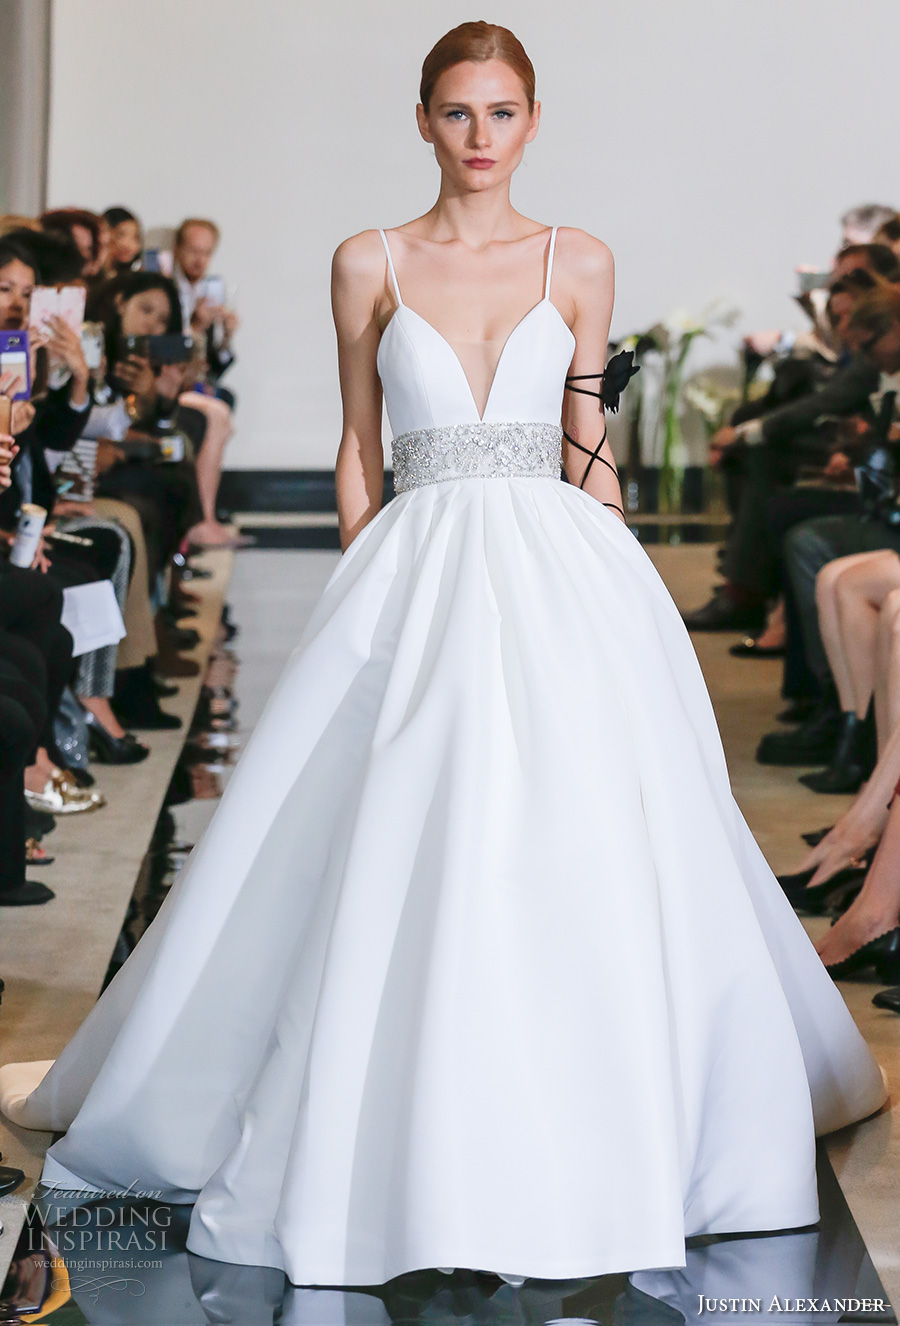 justin alexander spring 2018 bridal spagetti strap deep plunging sweetheart neckline simple clean embellished belt ball gown wedding dress chapel train (06) mv